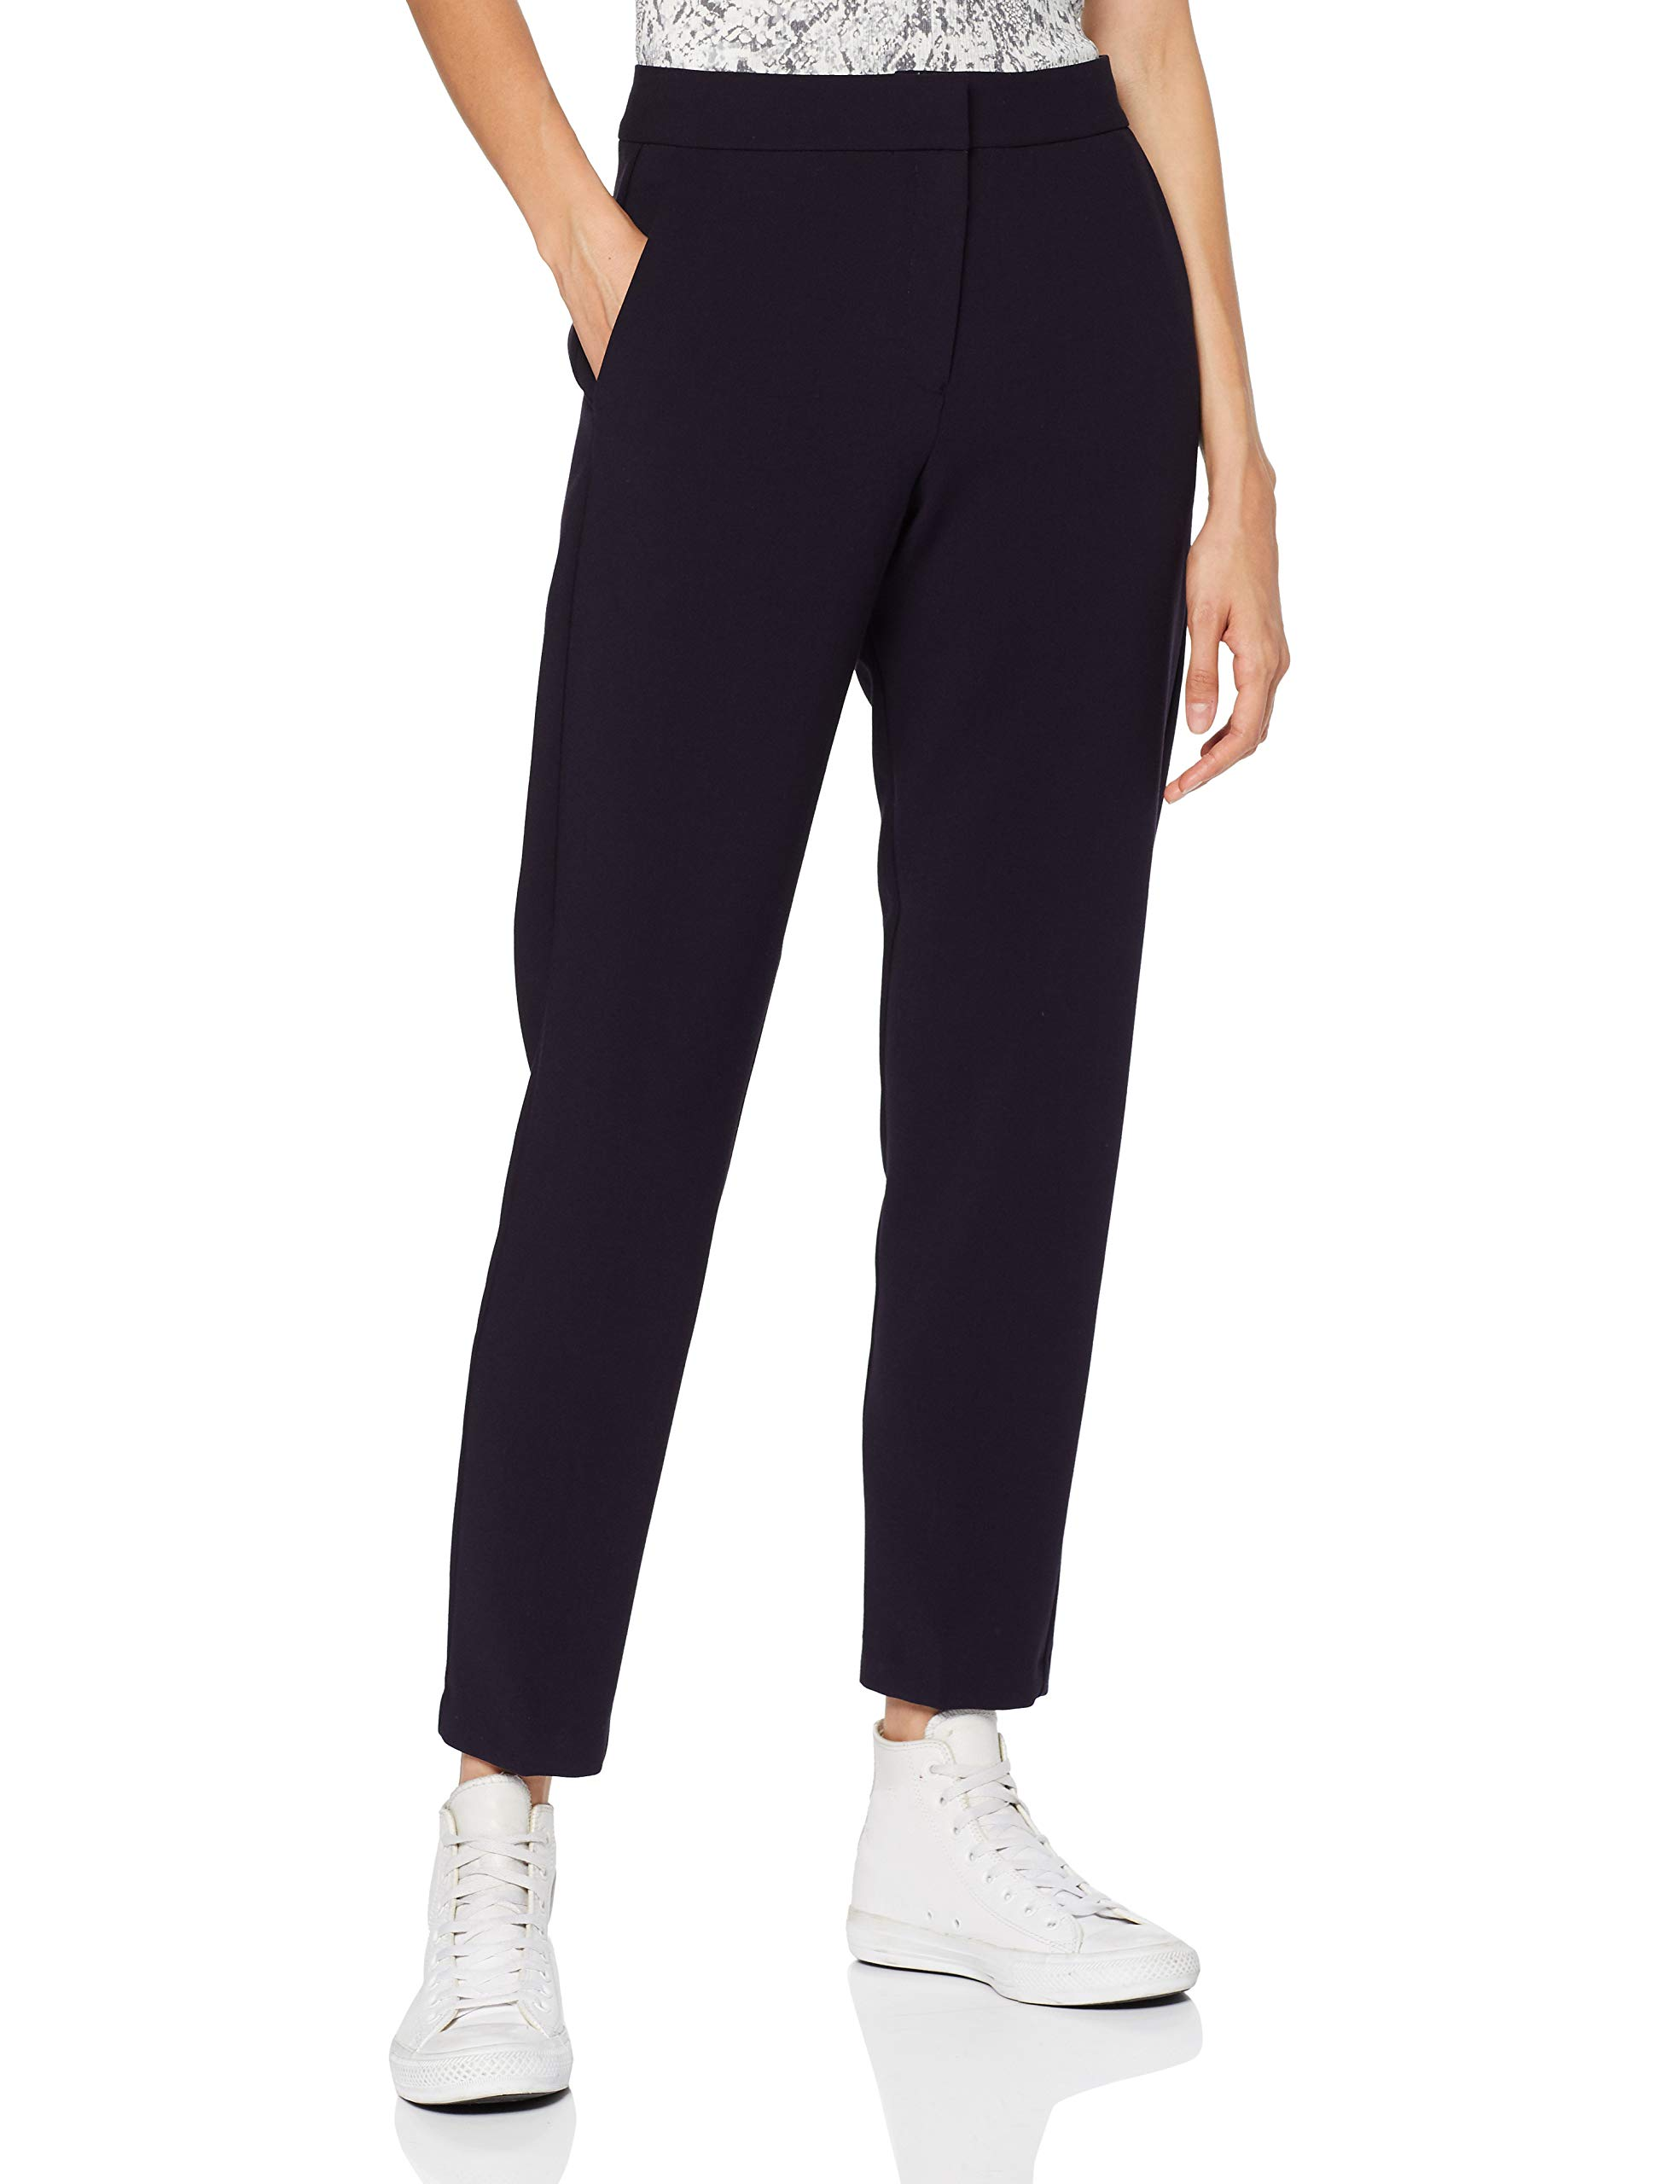 Fabricant14Femme Connection Whisper Ruth French Blue PantalonBleuutility 4042taille OXiZPku